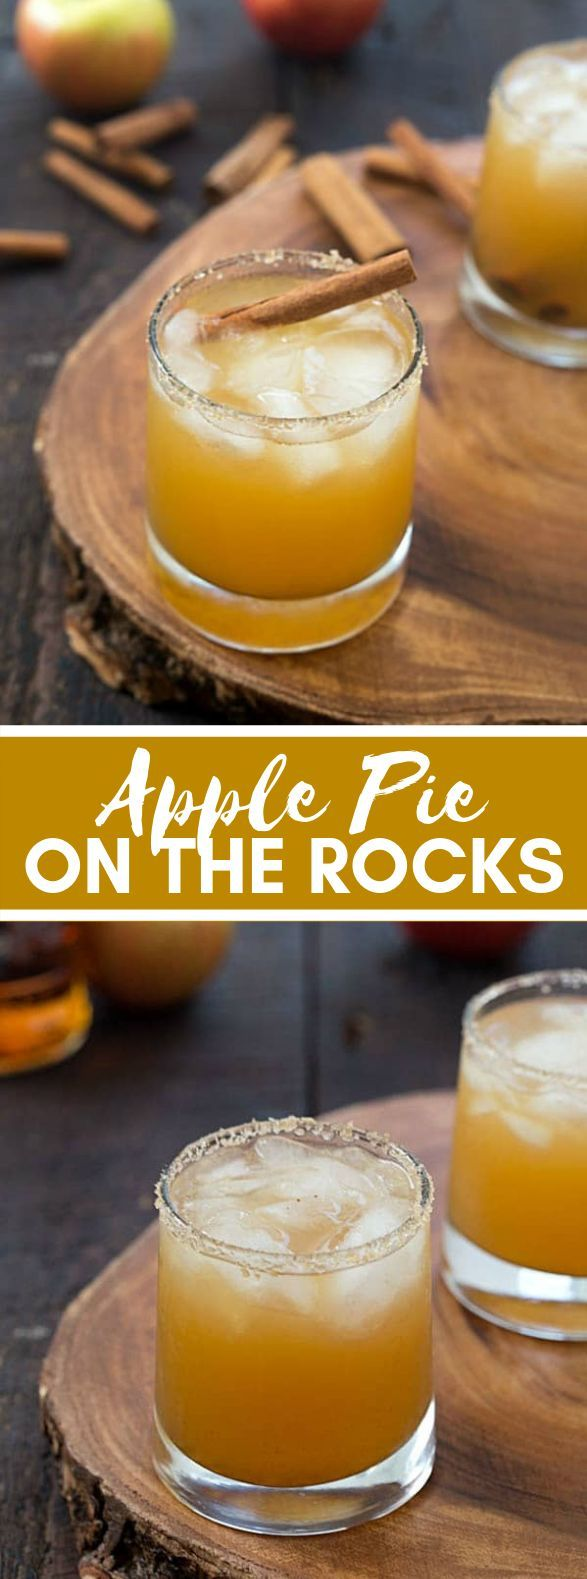 Apple pie on the Rocks #thanksgiving #christmas #drinks #apple #cocktails #thanksgivingdrinksalcohol